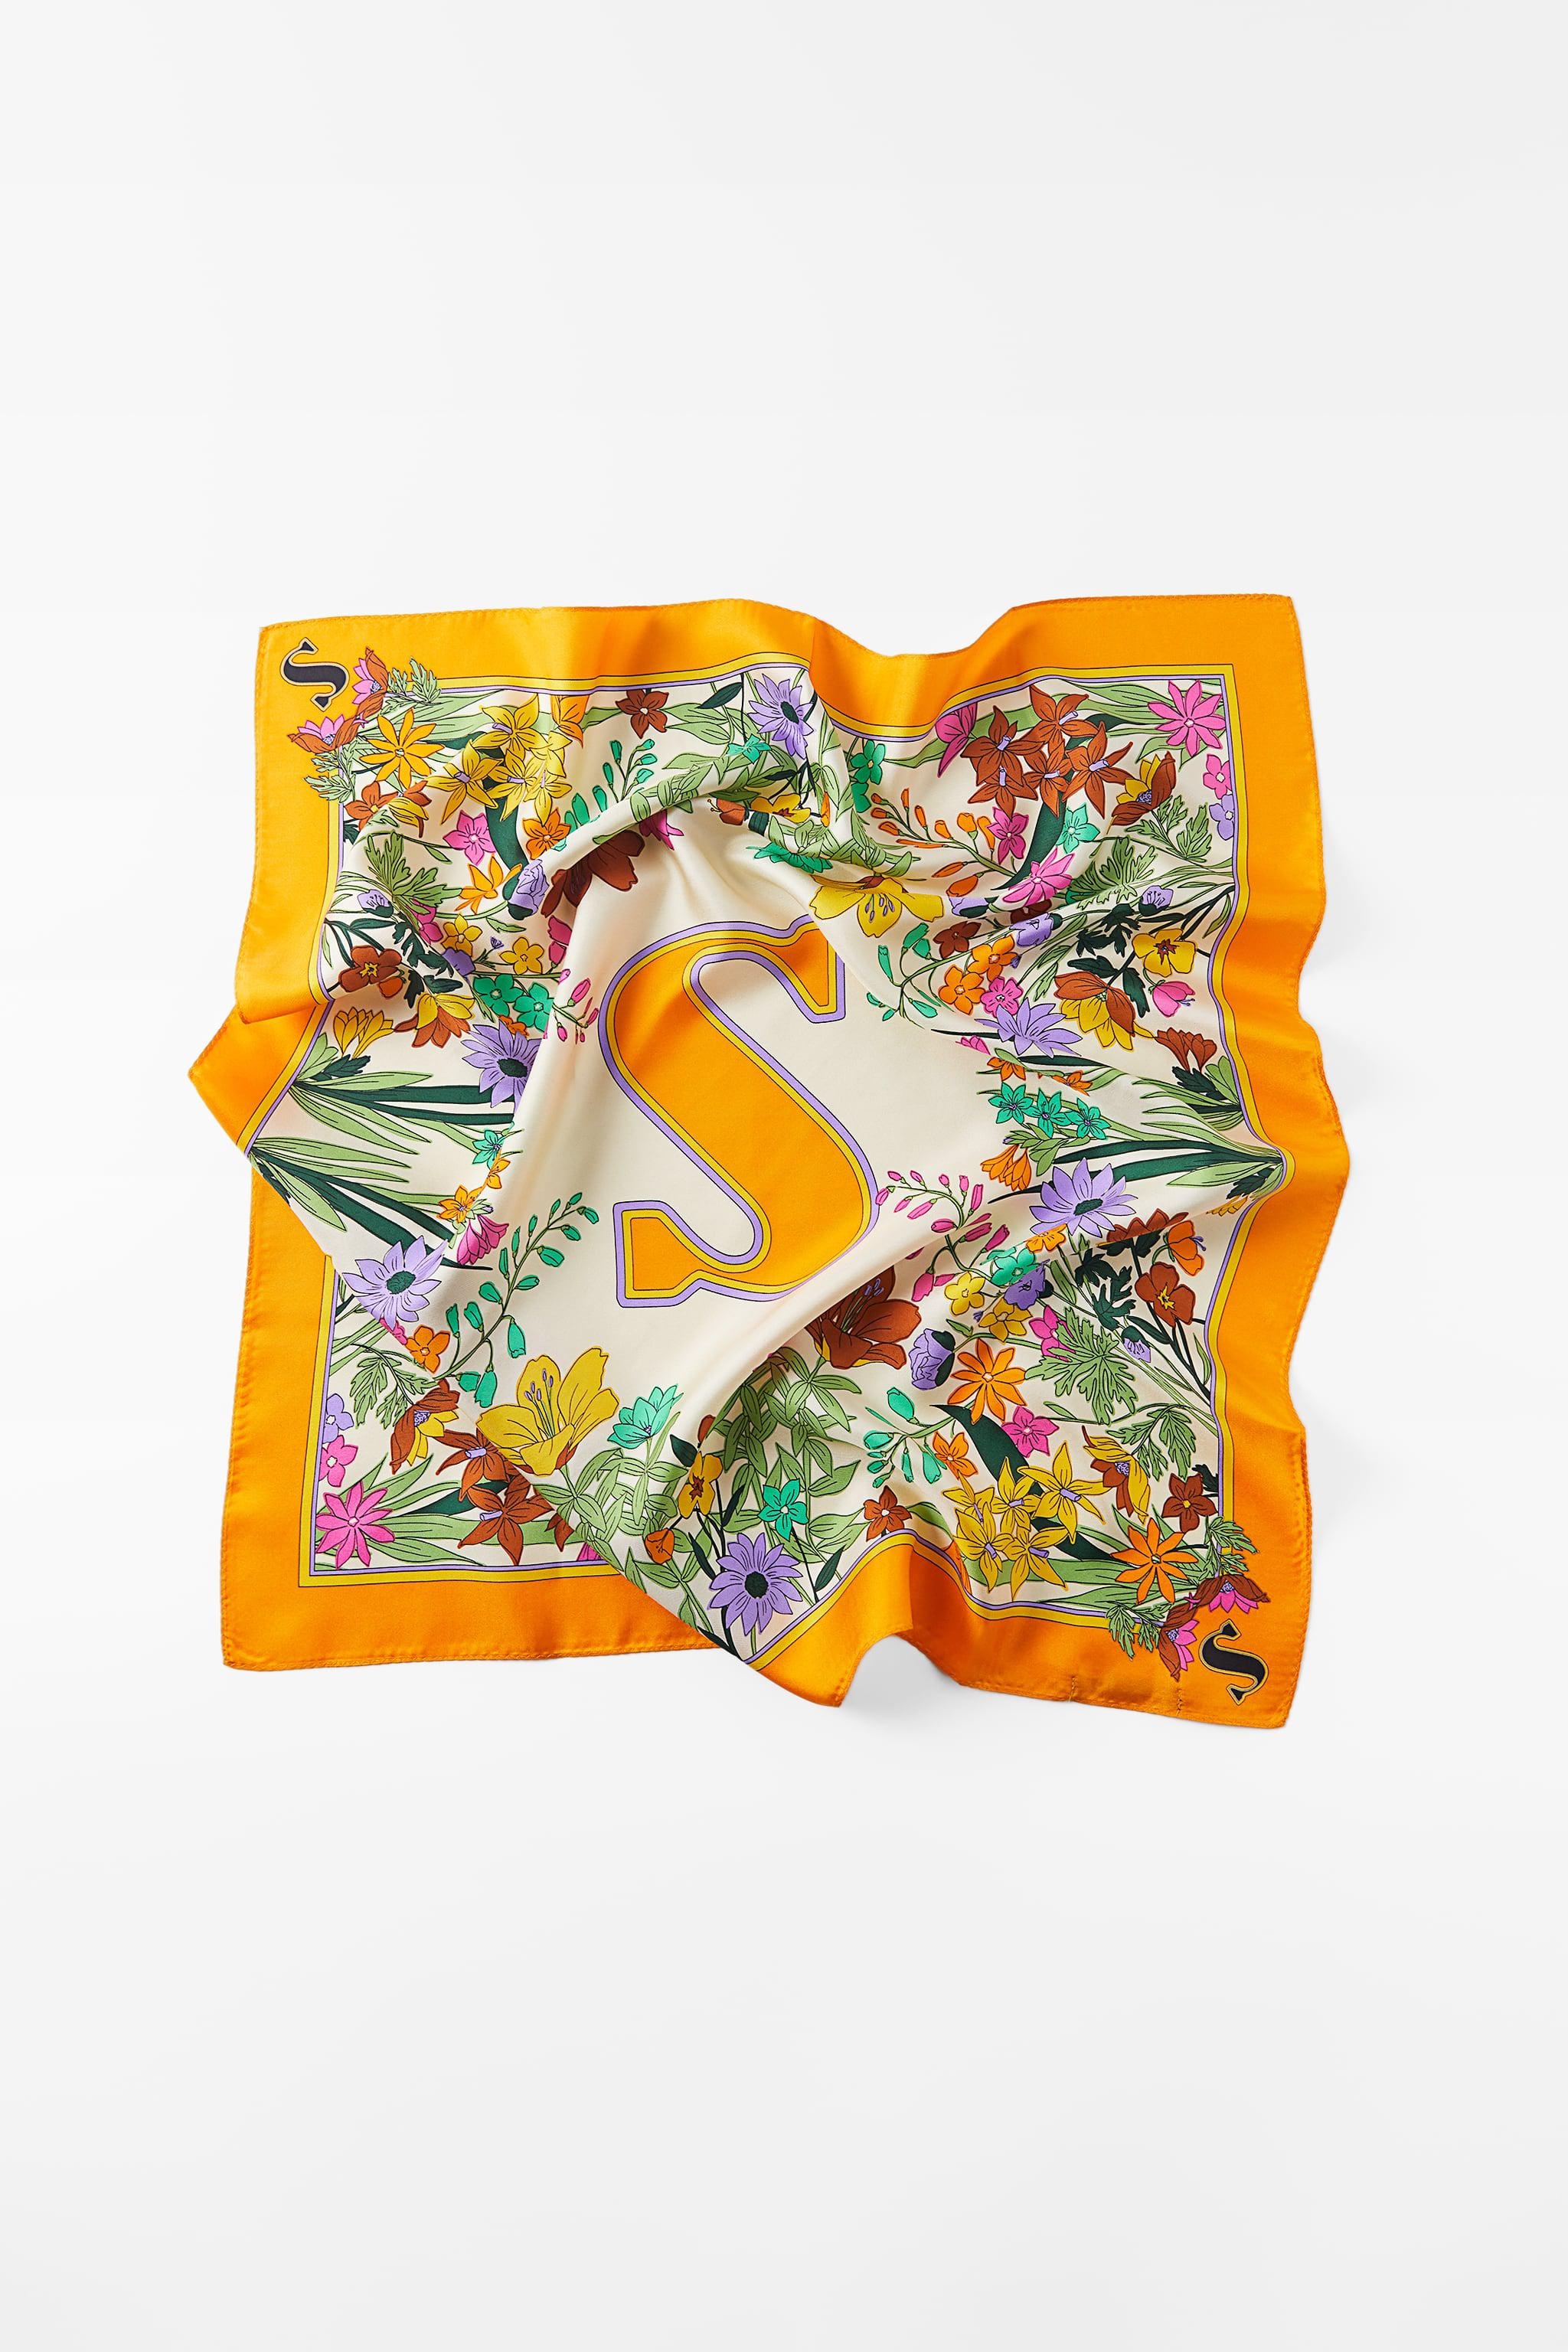 INITIAL SILK SCARF SPECIAL EDITION 2